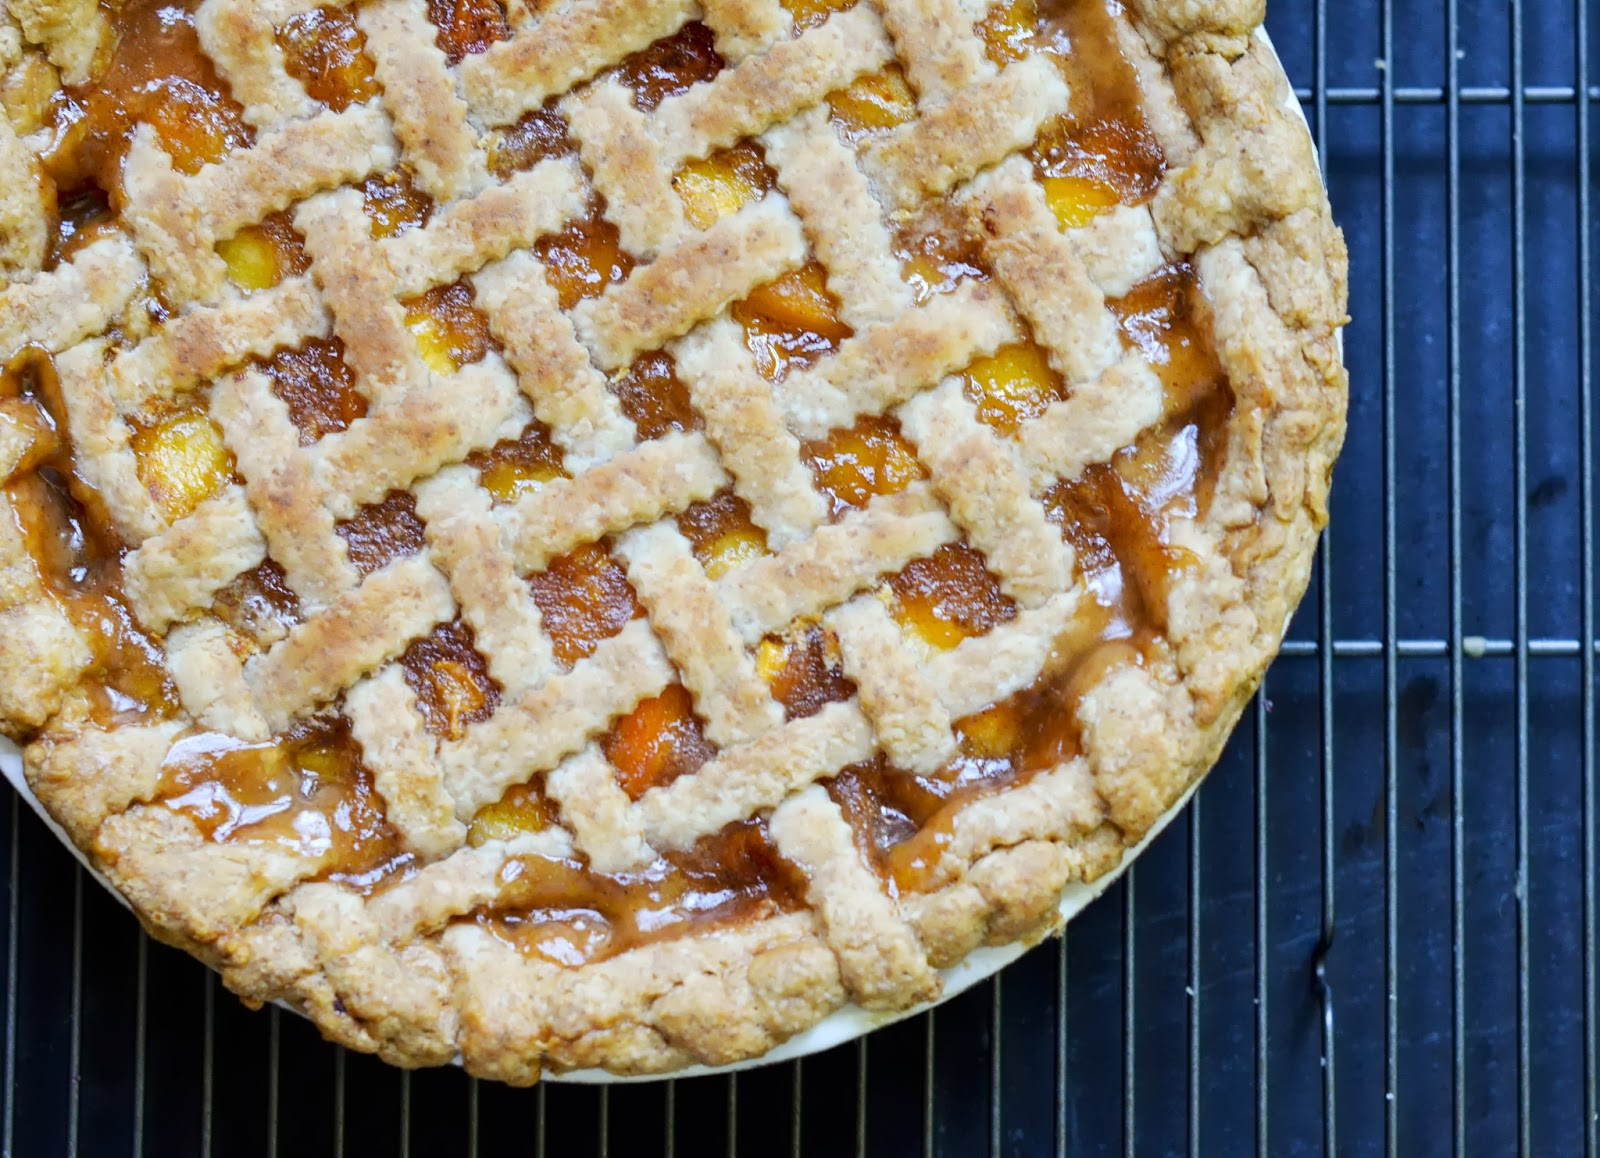 ... Duck and a Big Gooey Cake: A Taste of Summer: Perfect Peach-Ginger Pie